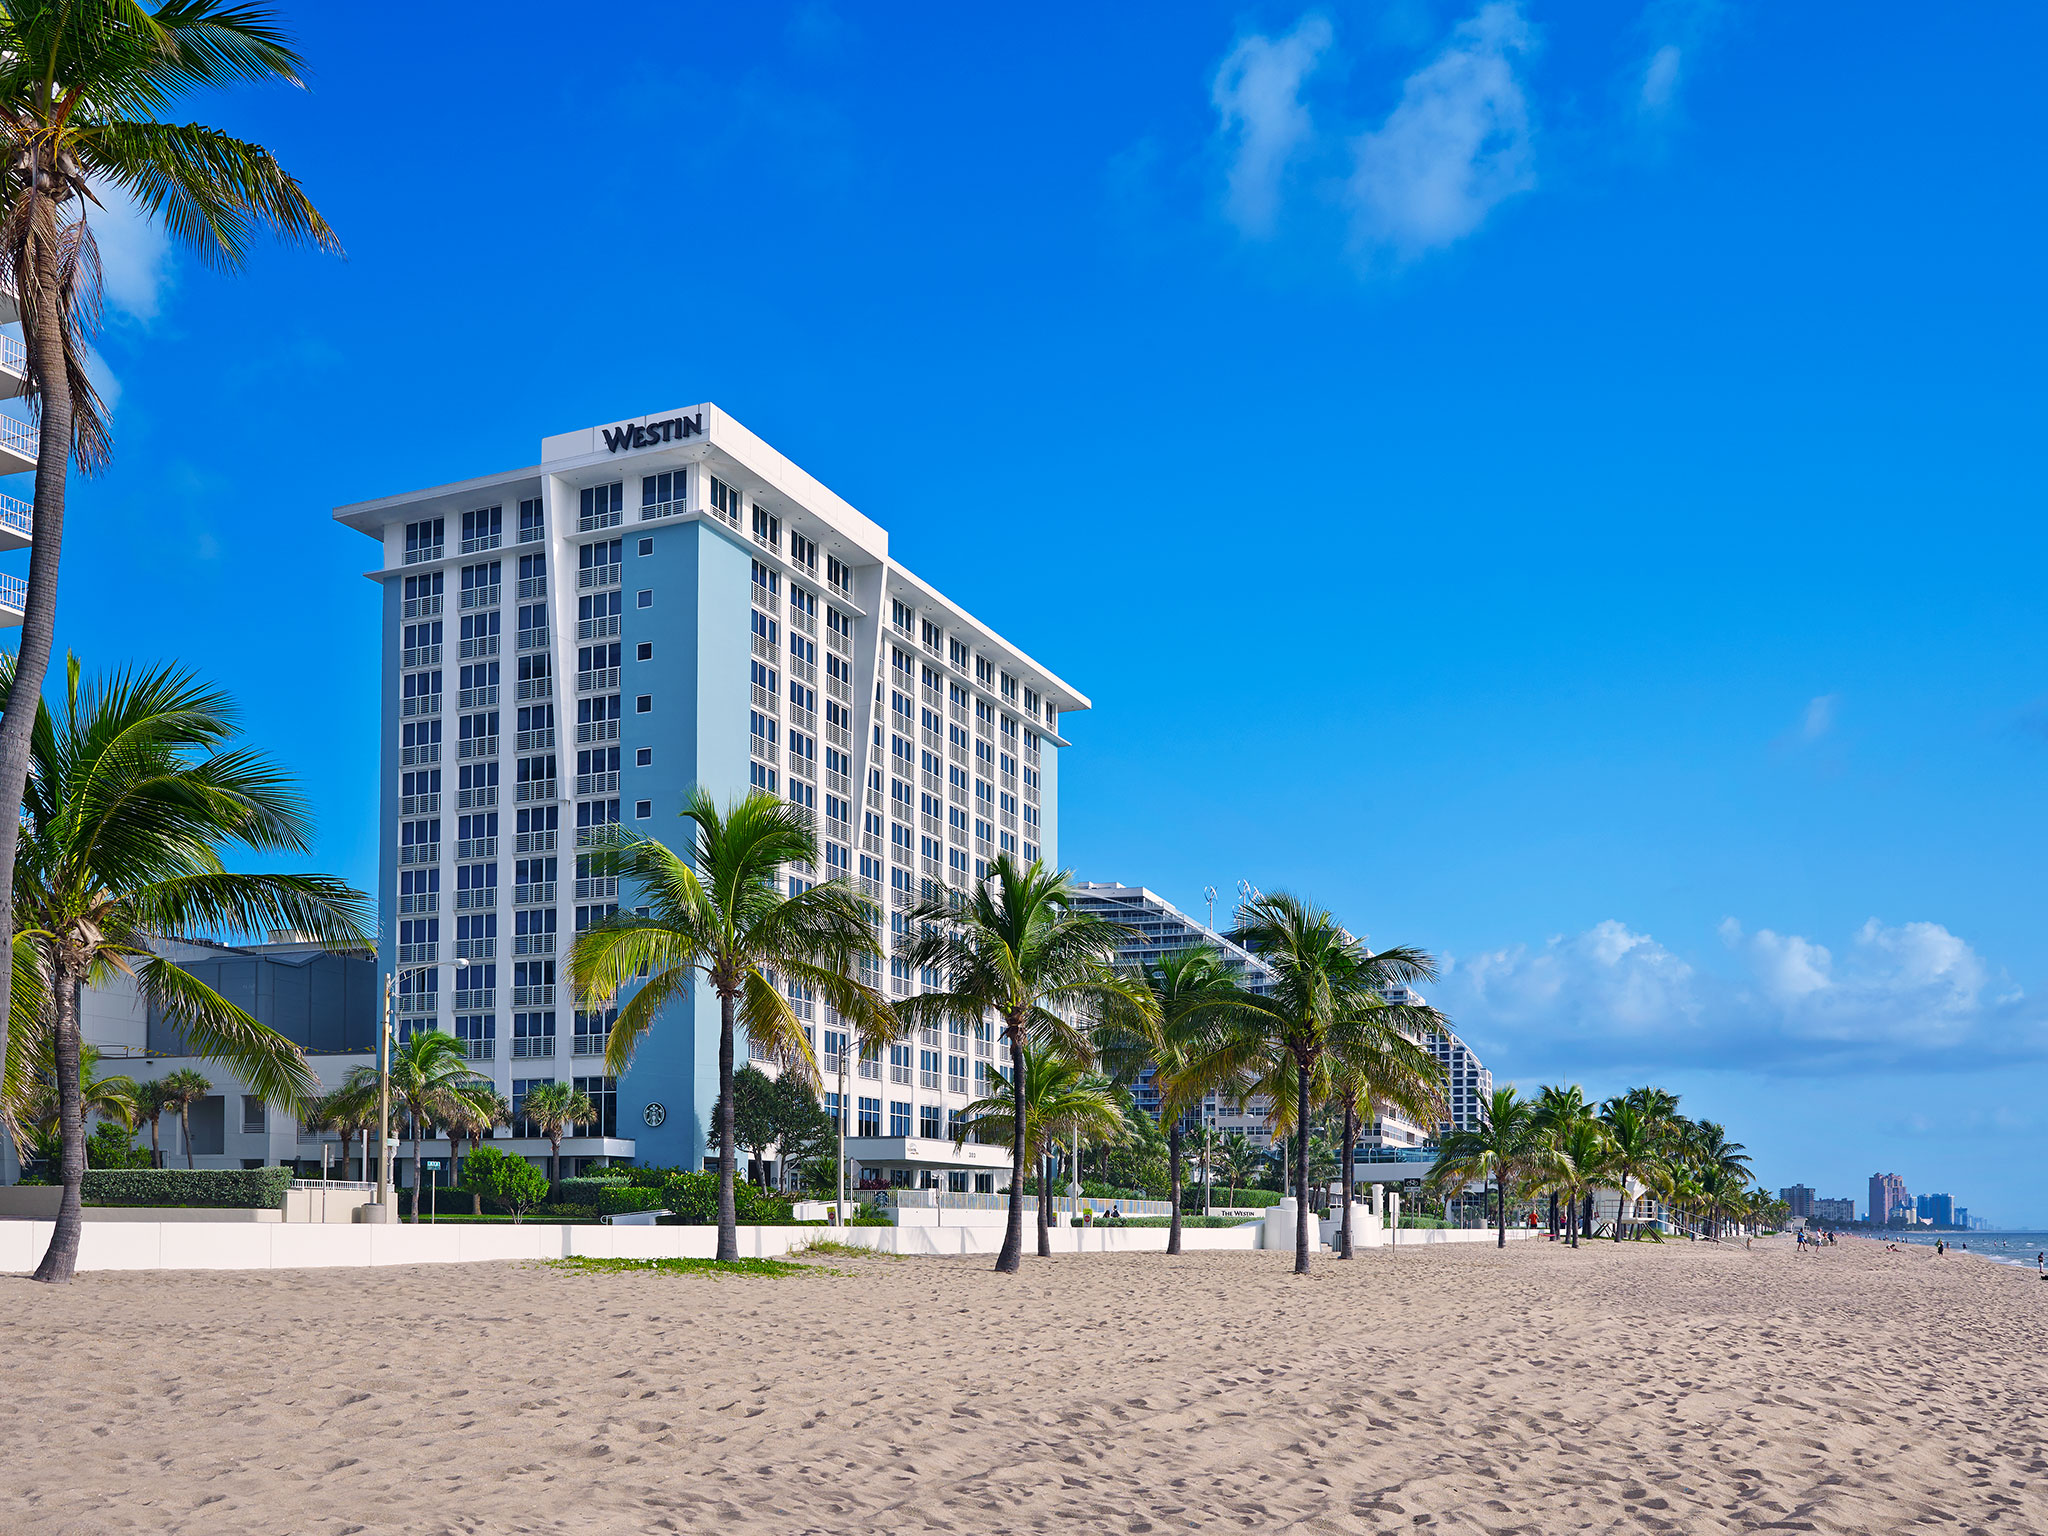 Fort lauderdale hotels the westin fort lauderdale beach resort